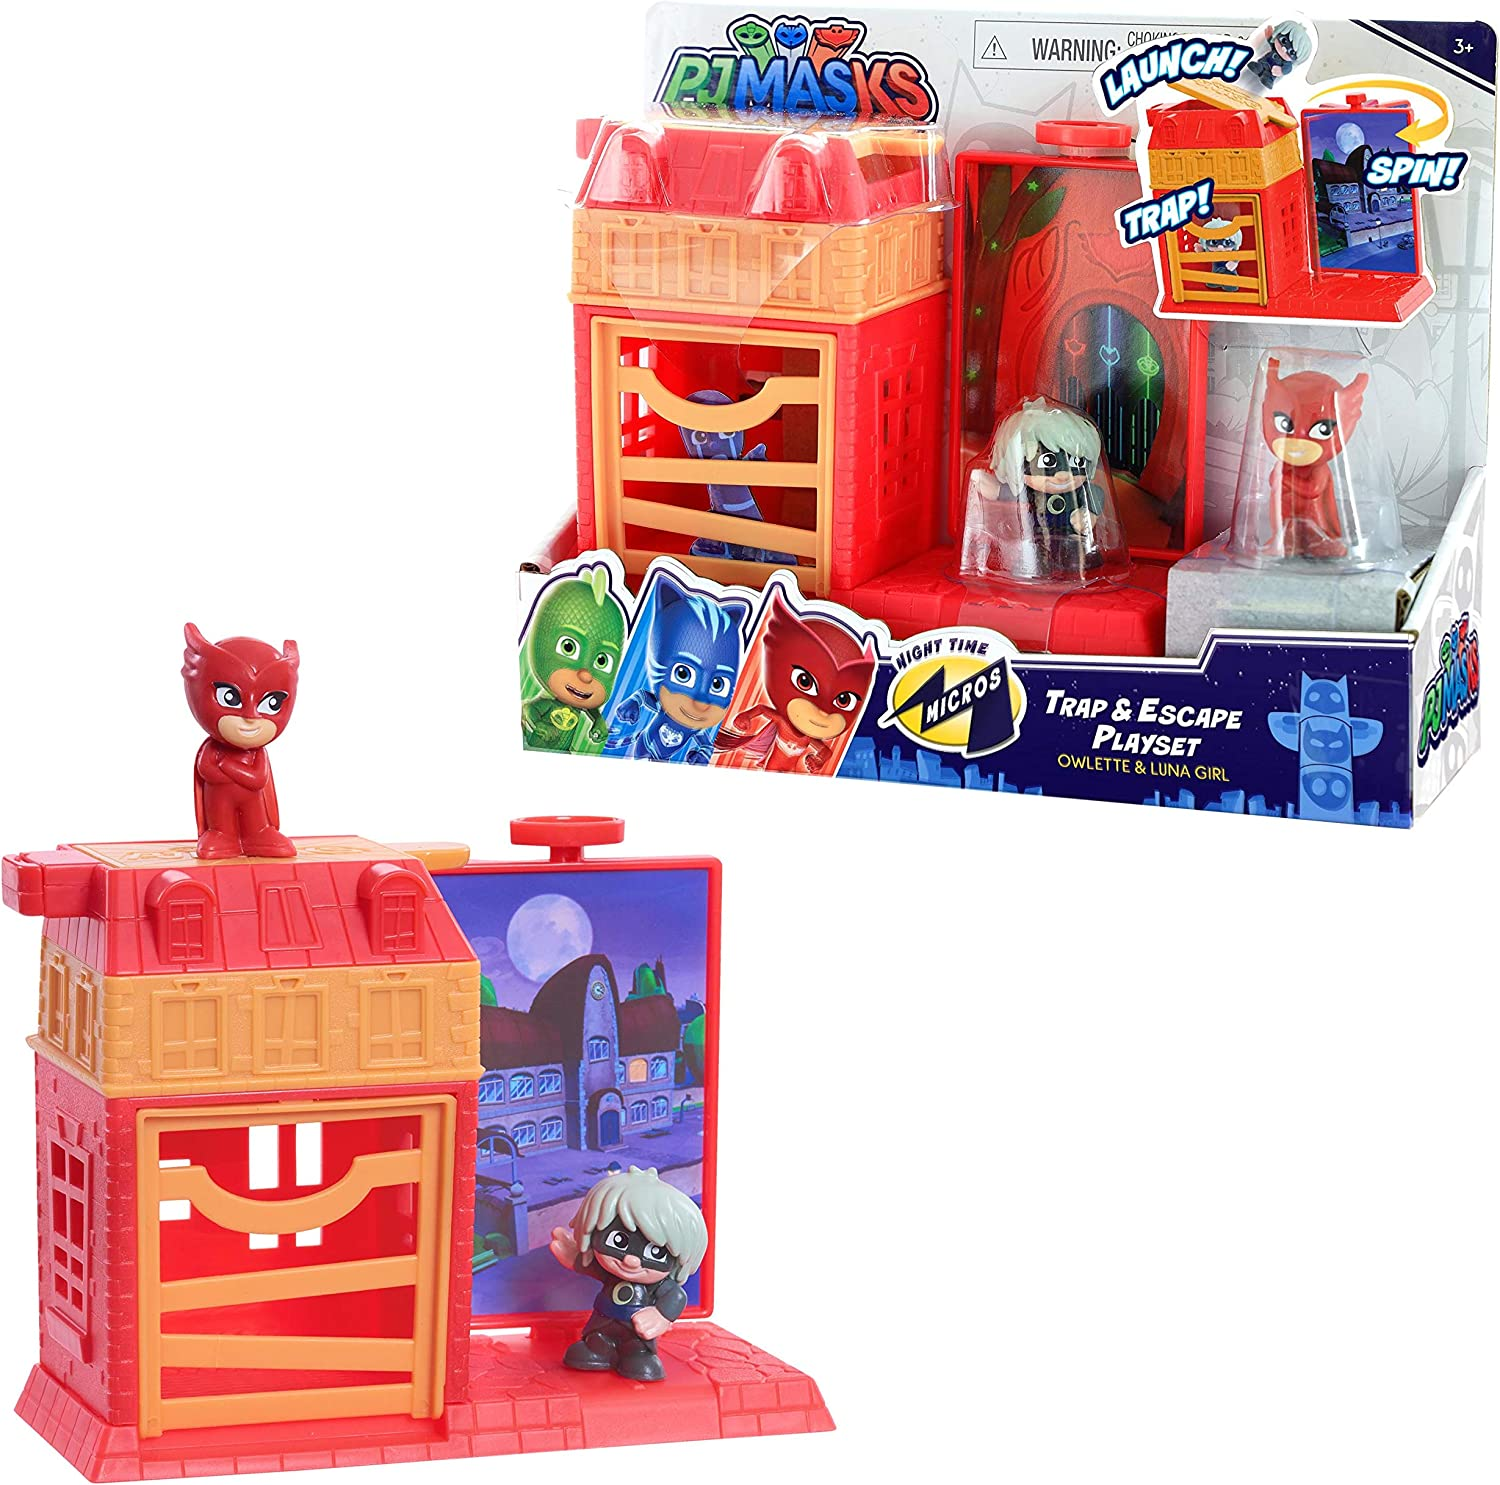 PJ Masks Nighttime Micros Trap & Escape Playset, Owlette vs. Luna Girl